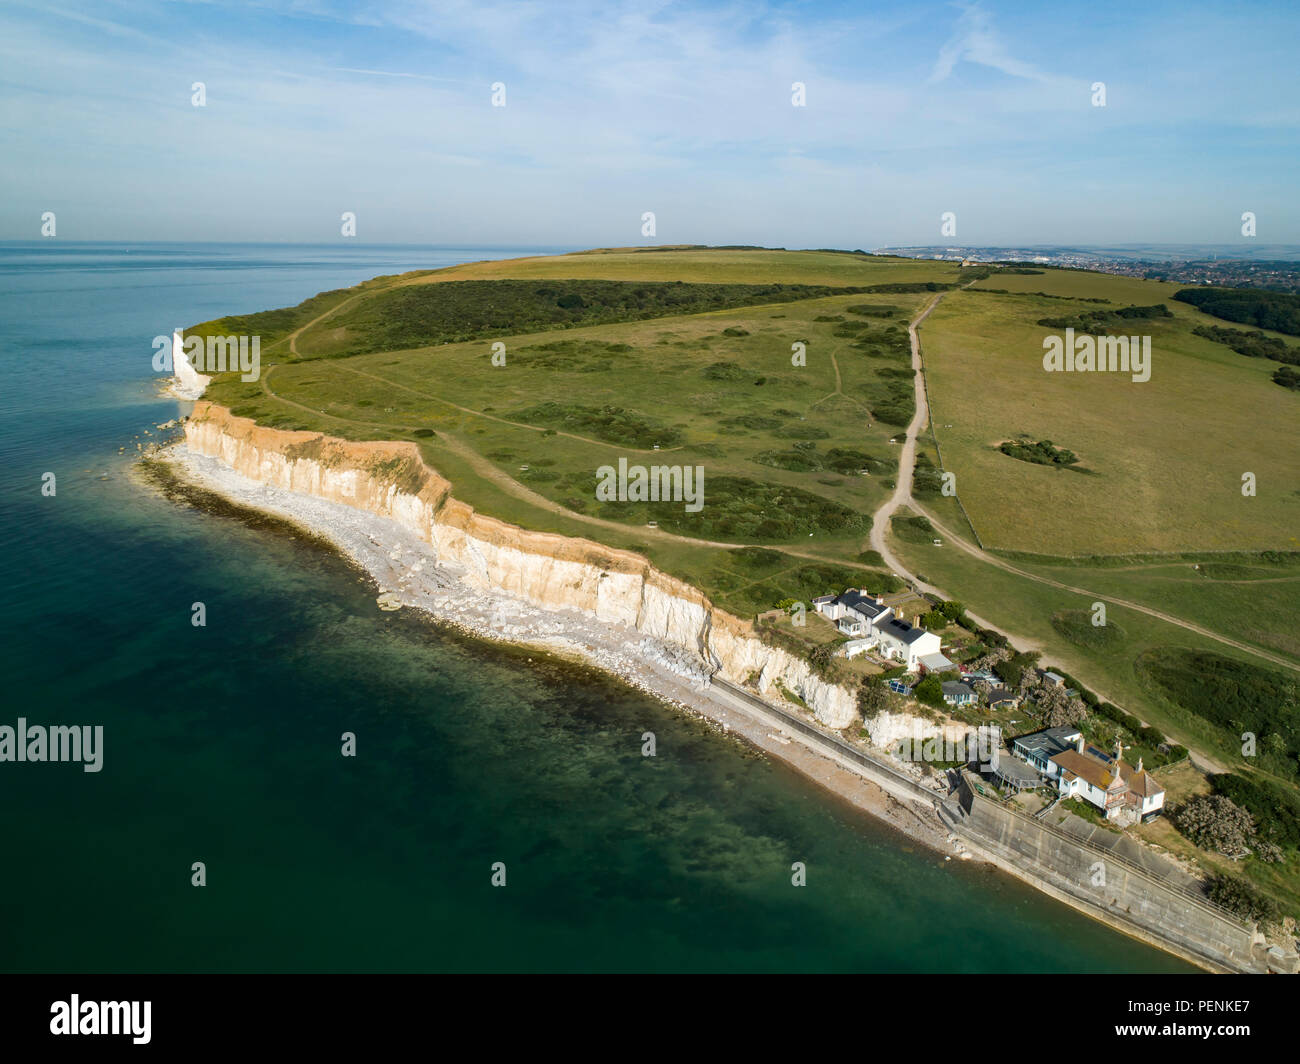 Drone immagine del Cuckmere Haven con coastguard cottages Seaford testa. Sussex, Inghilterra Foto Stock